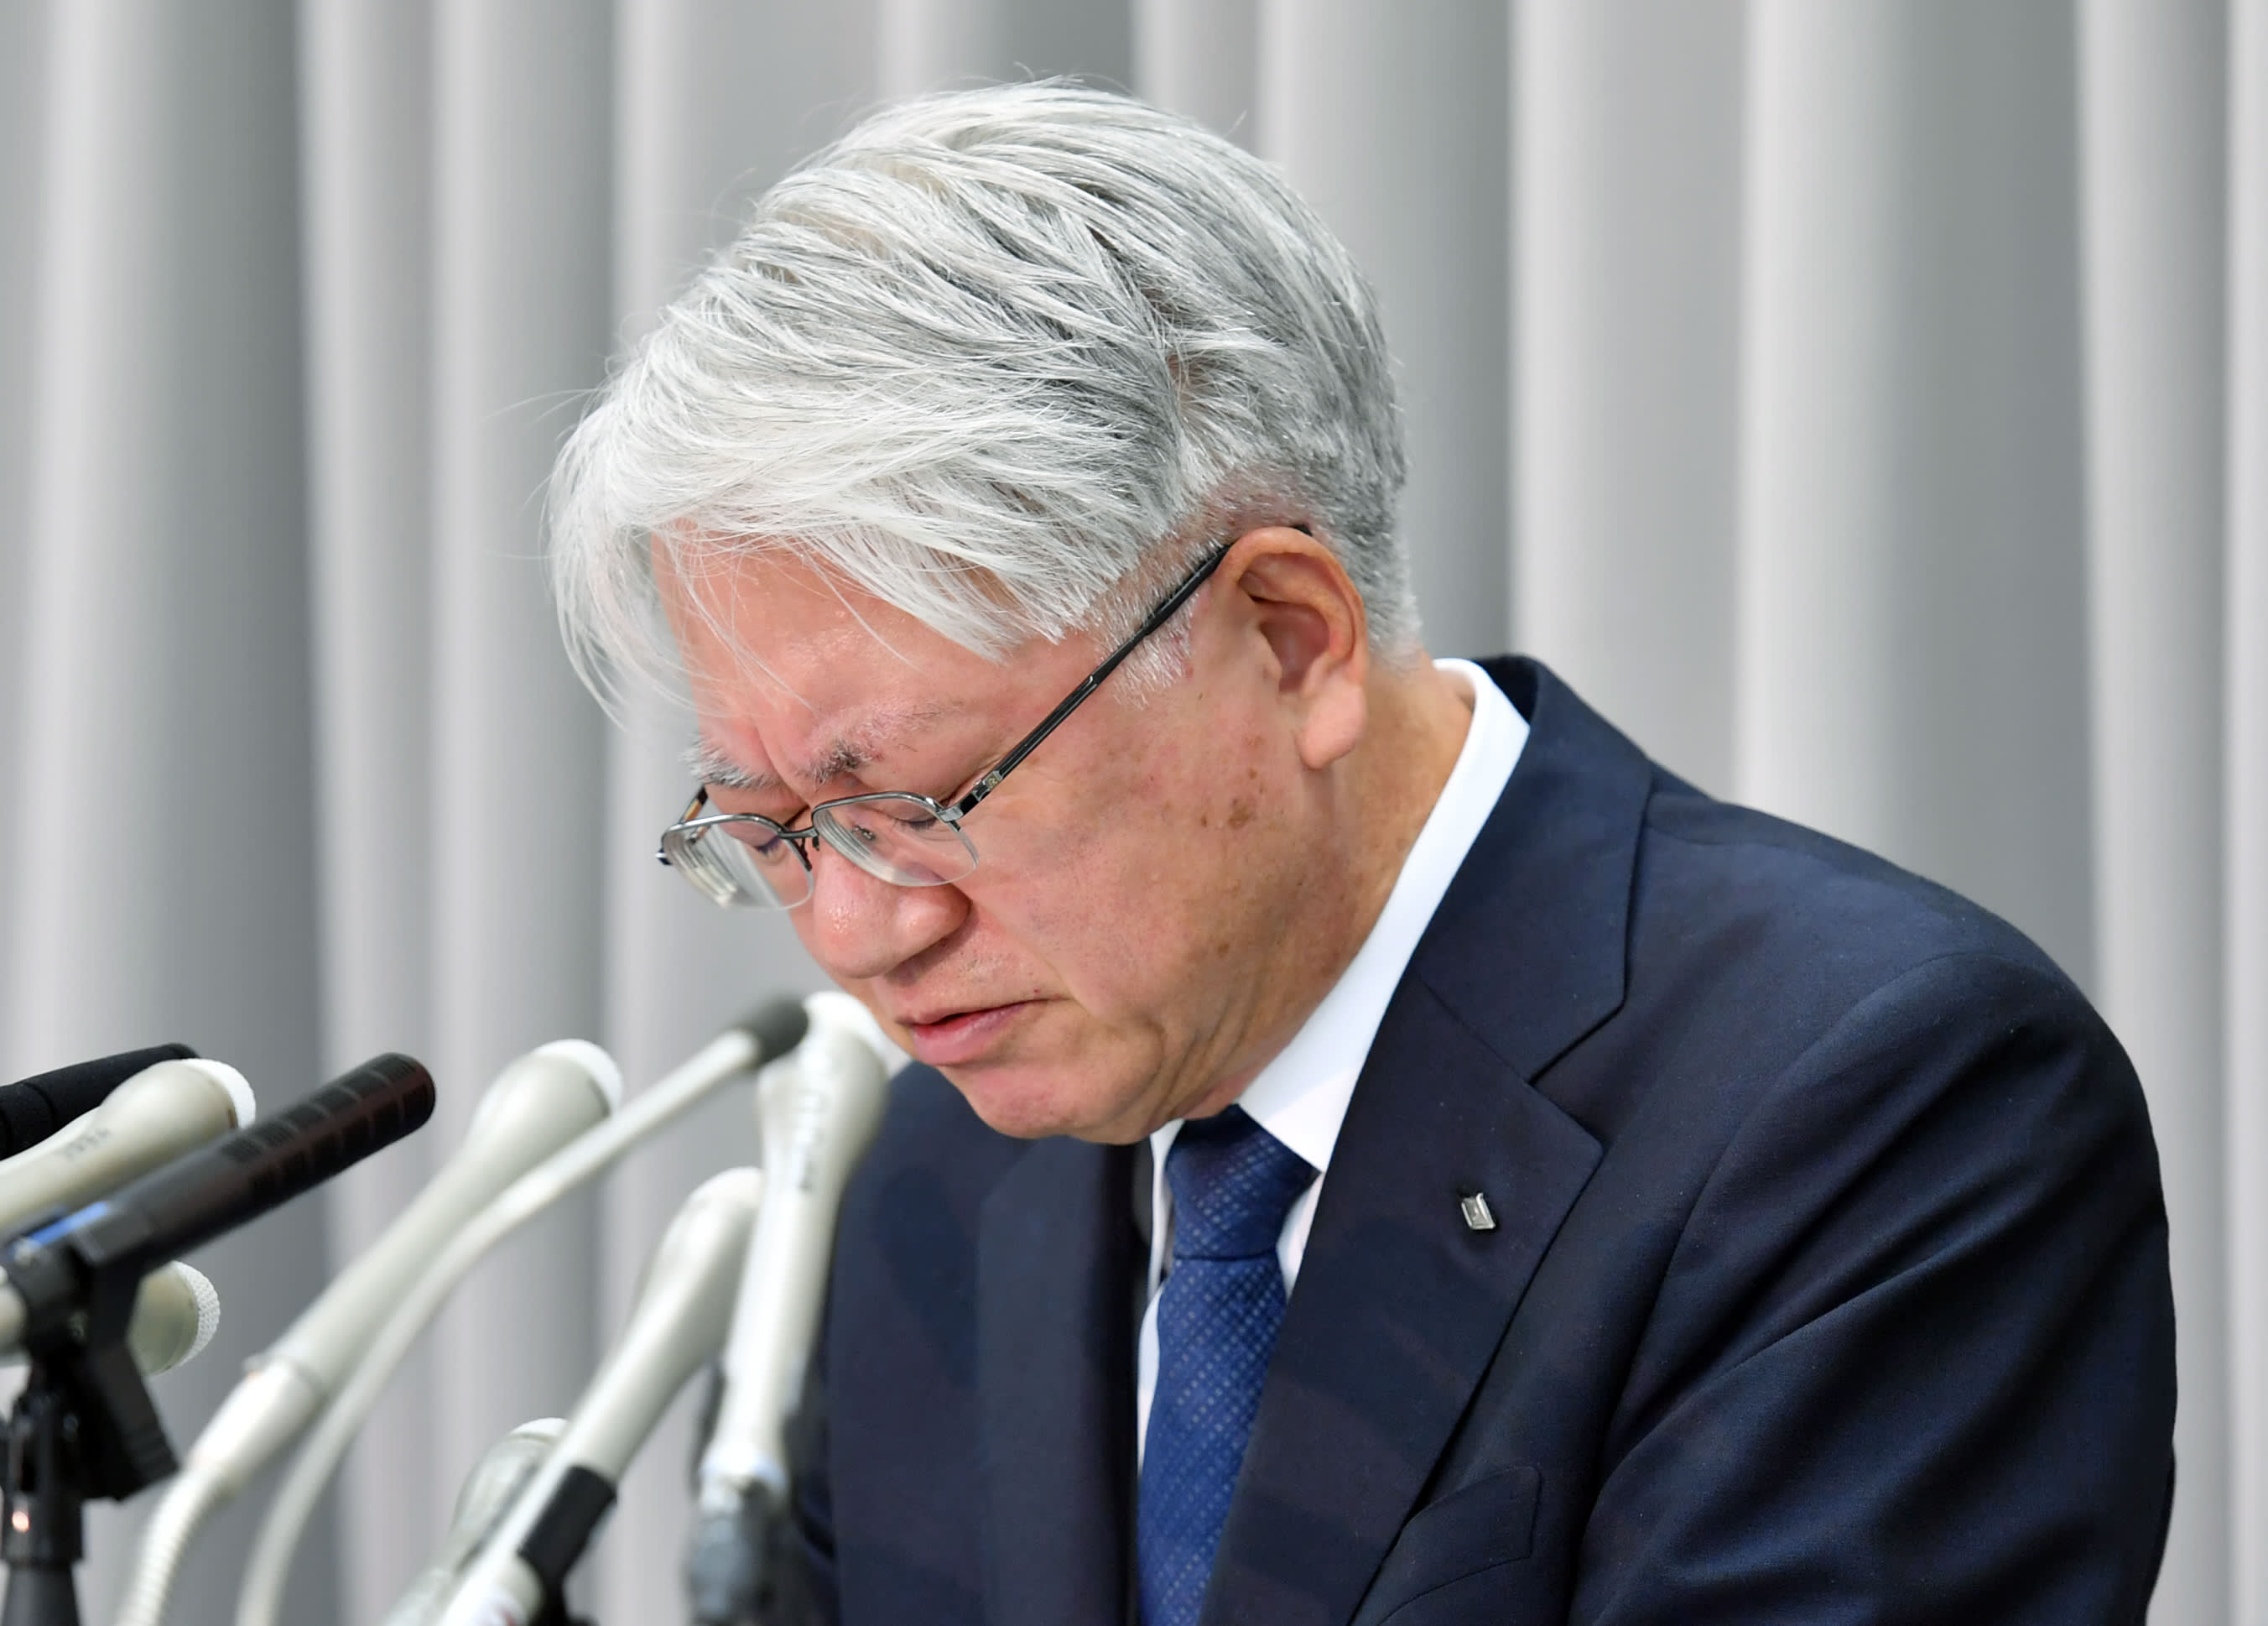 Kobe Steel trapped in endless chain of scandals - Nikkei